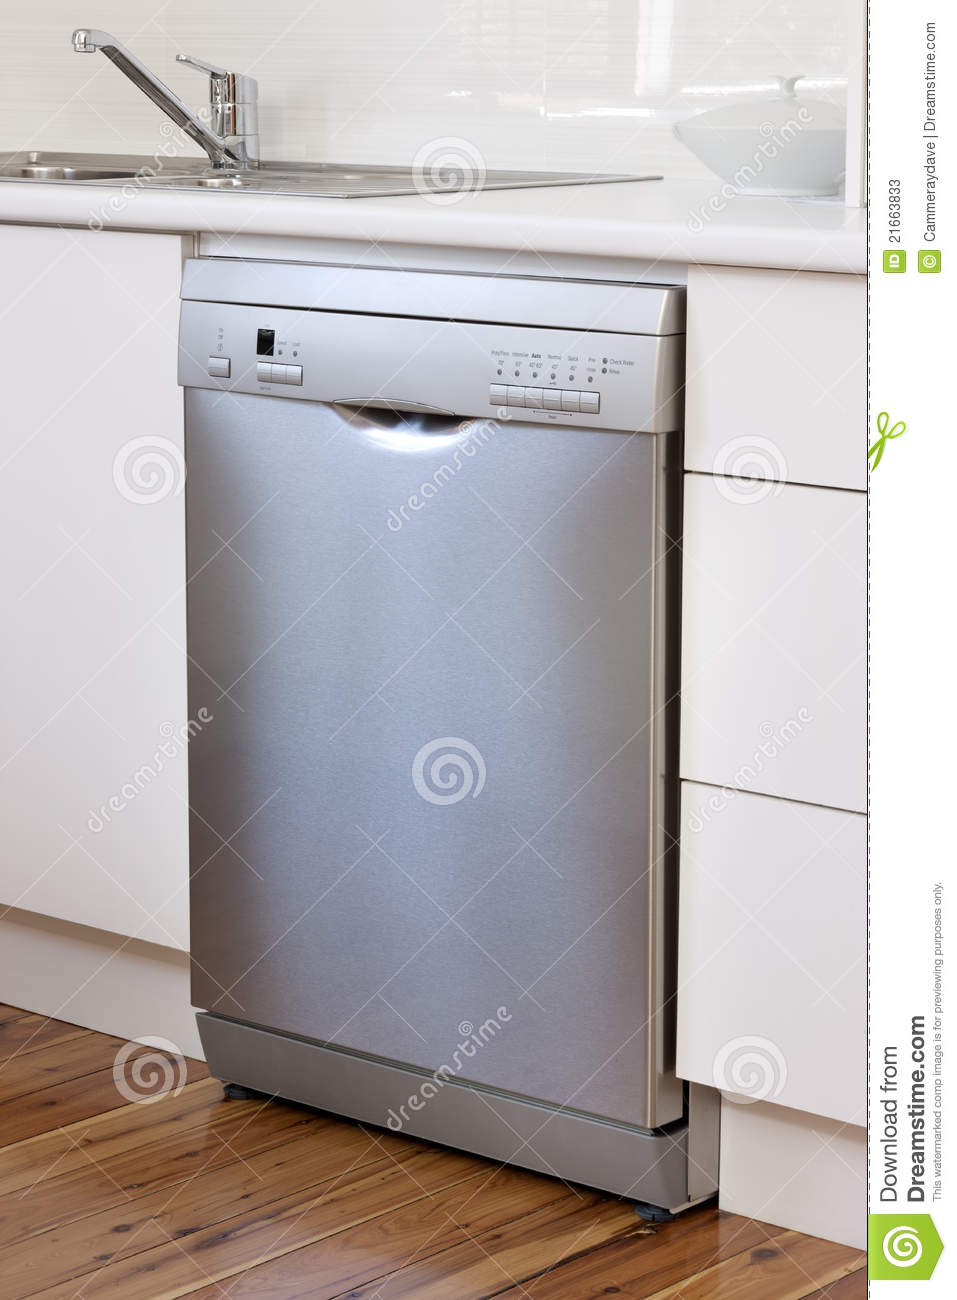 Stainless Steel Dishwasher Appliance Kitchen Stock Image - Image ...